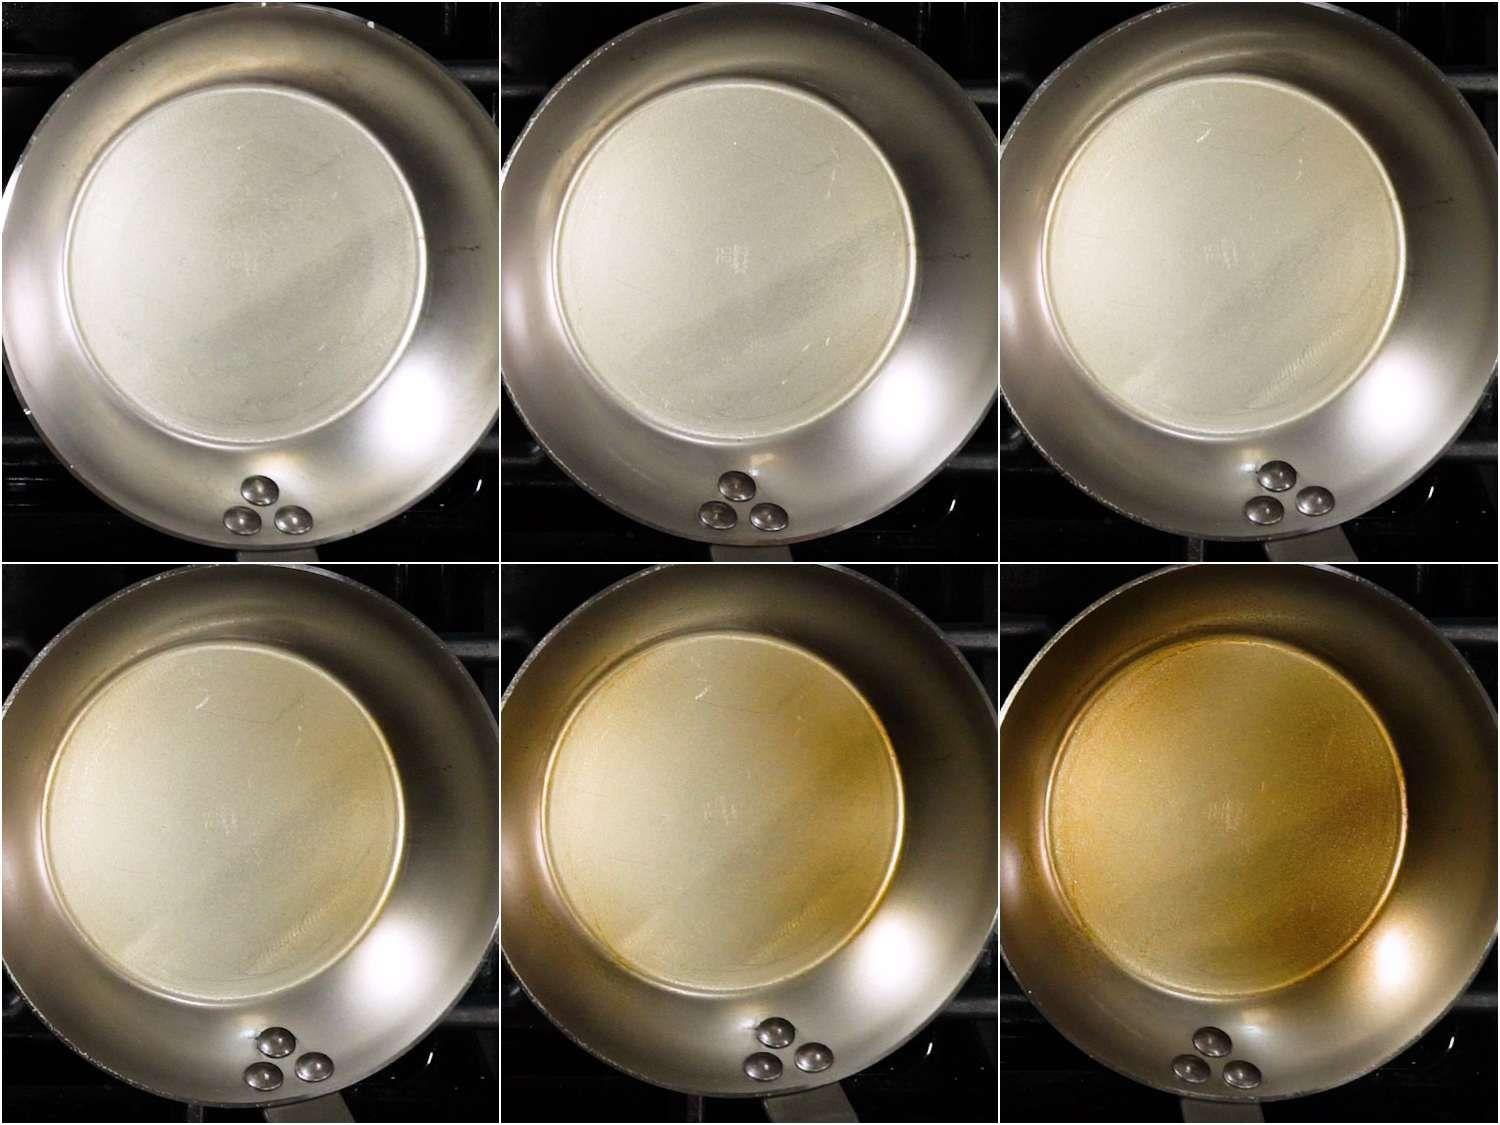 A time-lapse sequence showing seasoning forming on a new carbon steel pan (the pan goes from a metallic color to brown)